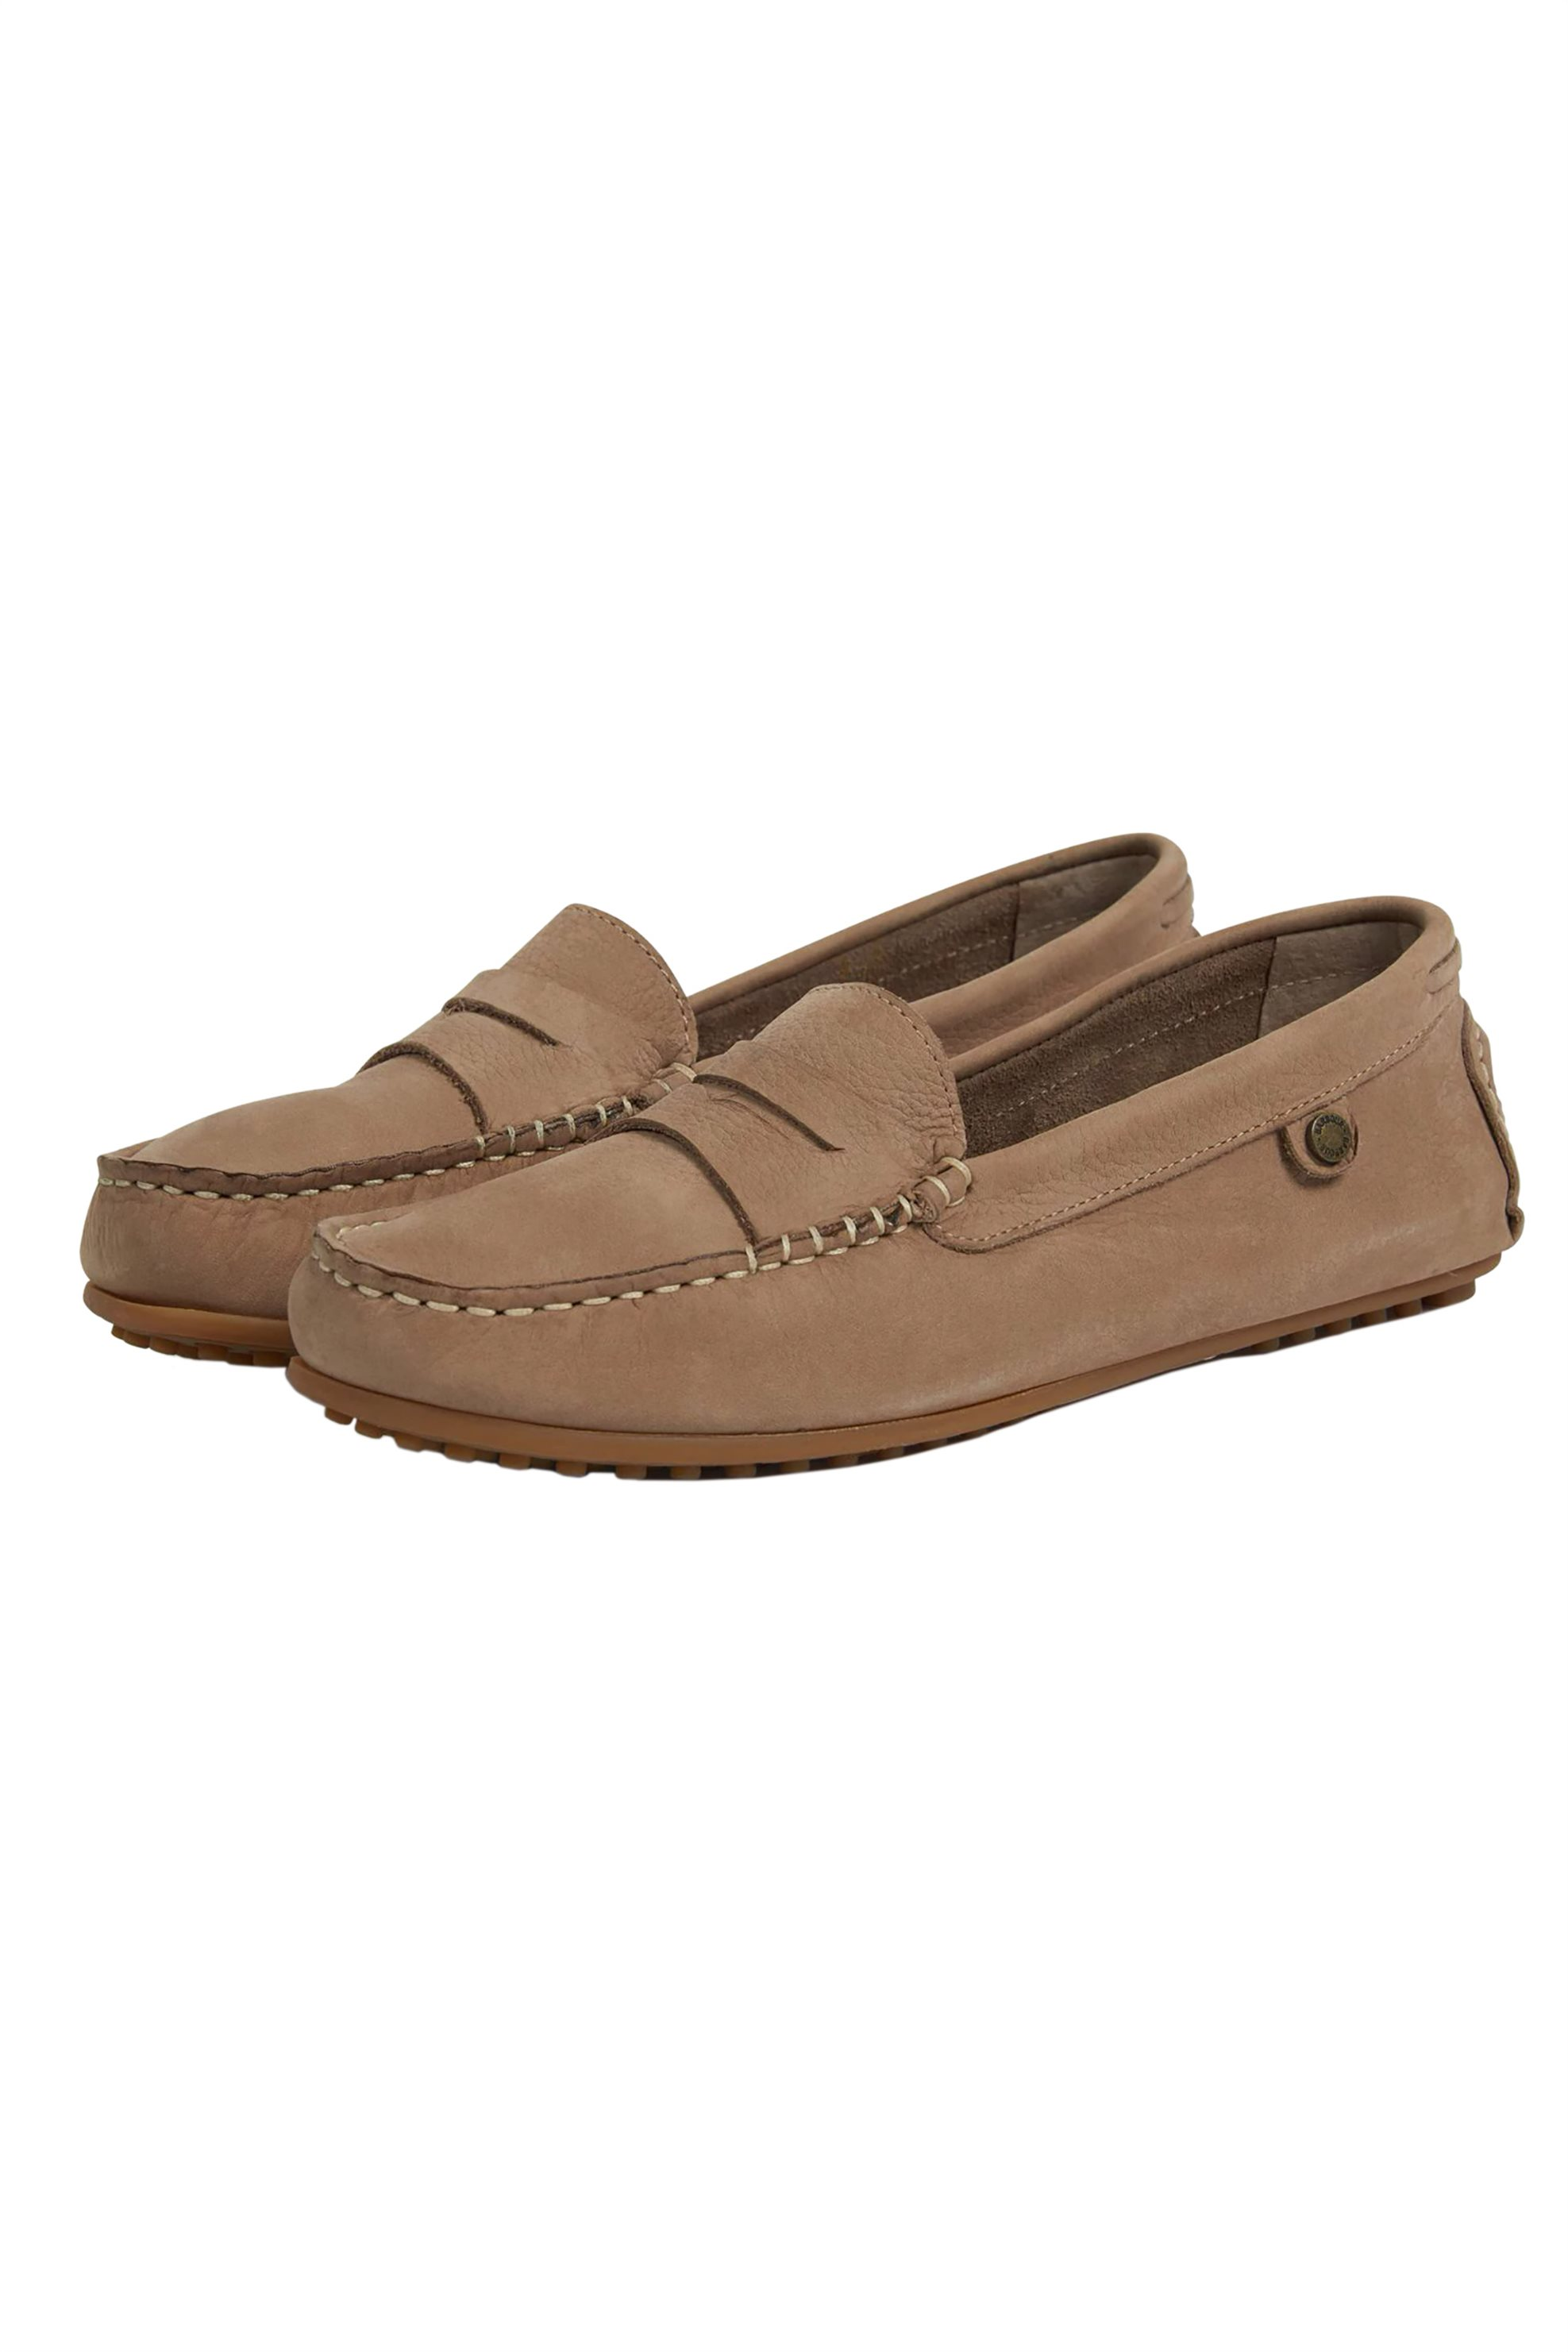 Barbour γυναικεία loafers Danica - LFO0291 - Καφέ